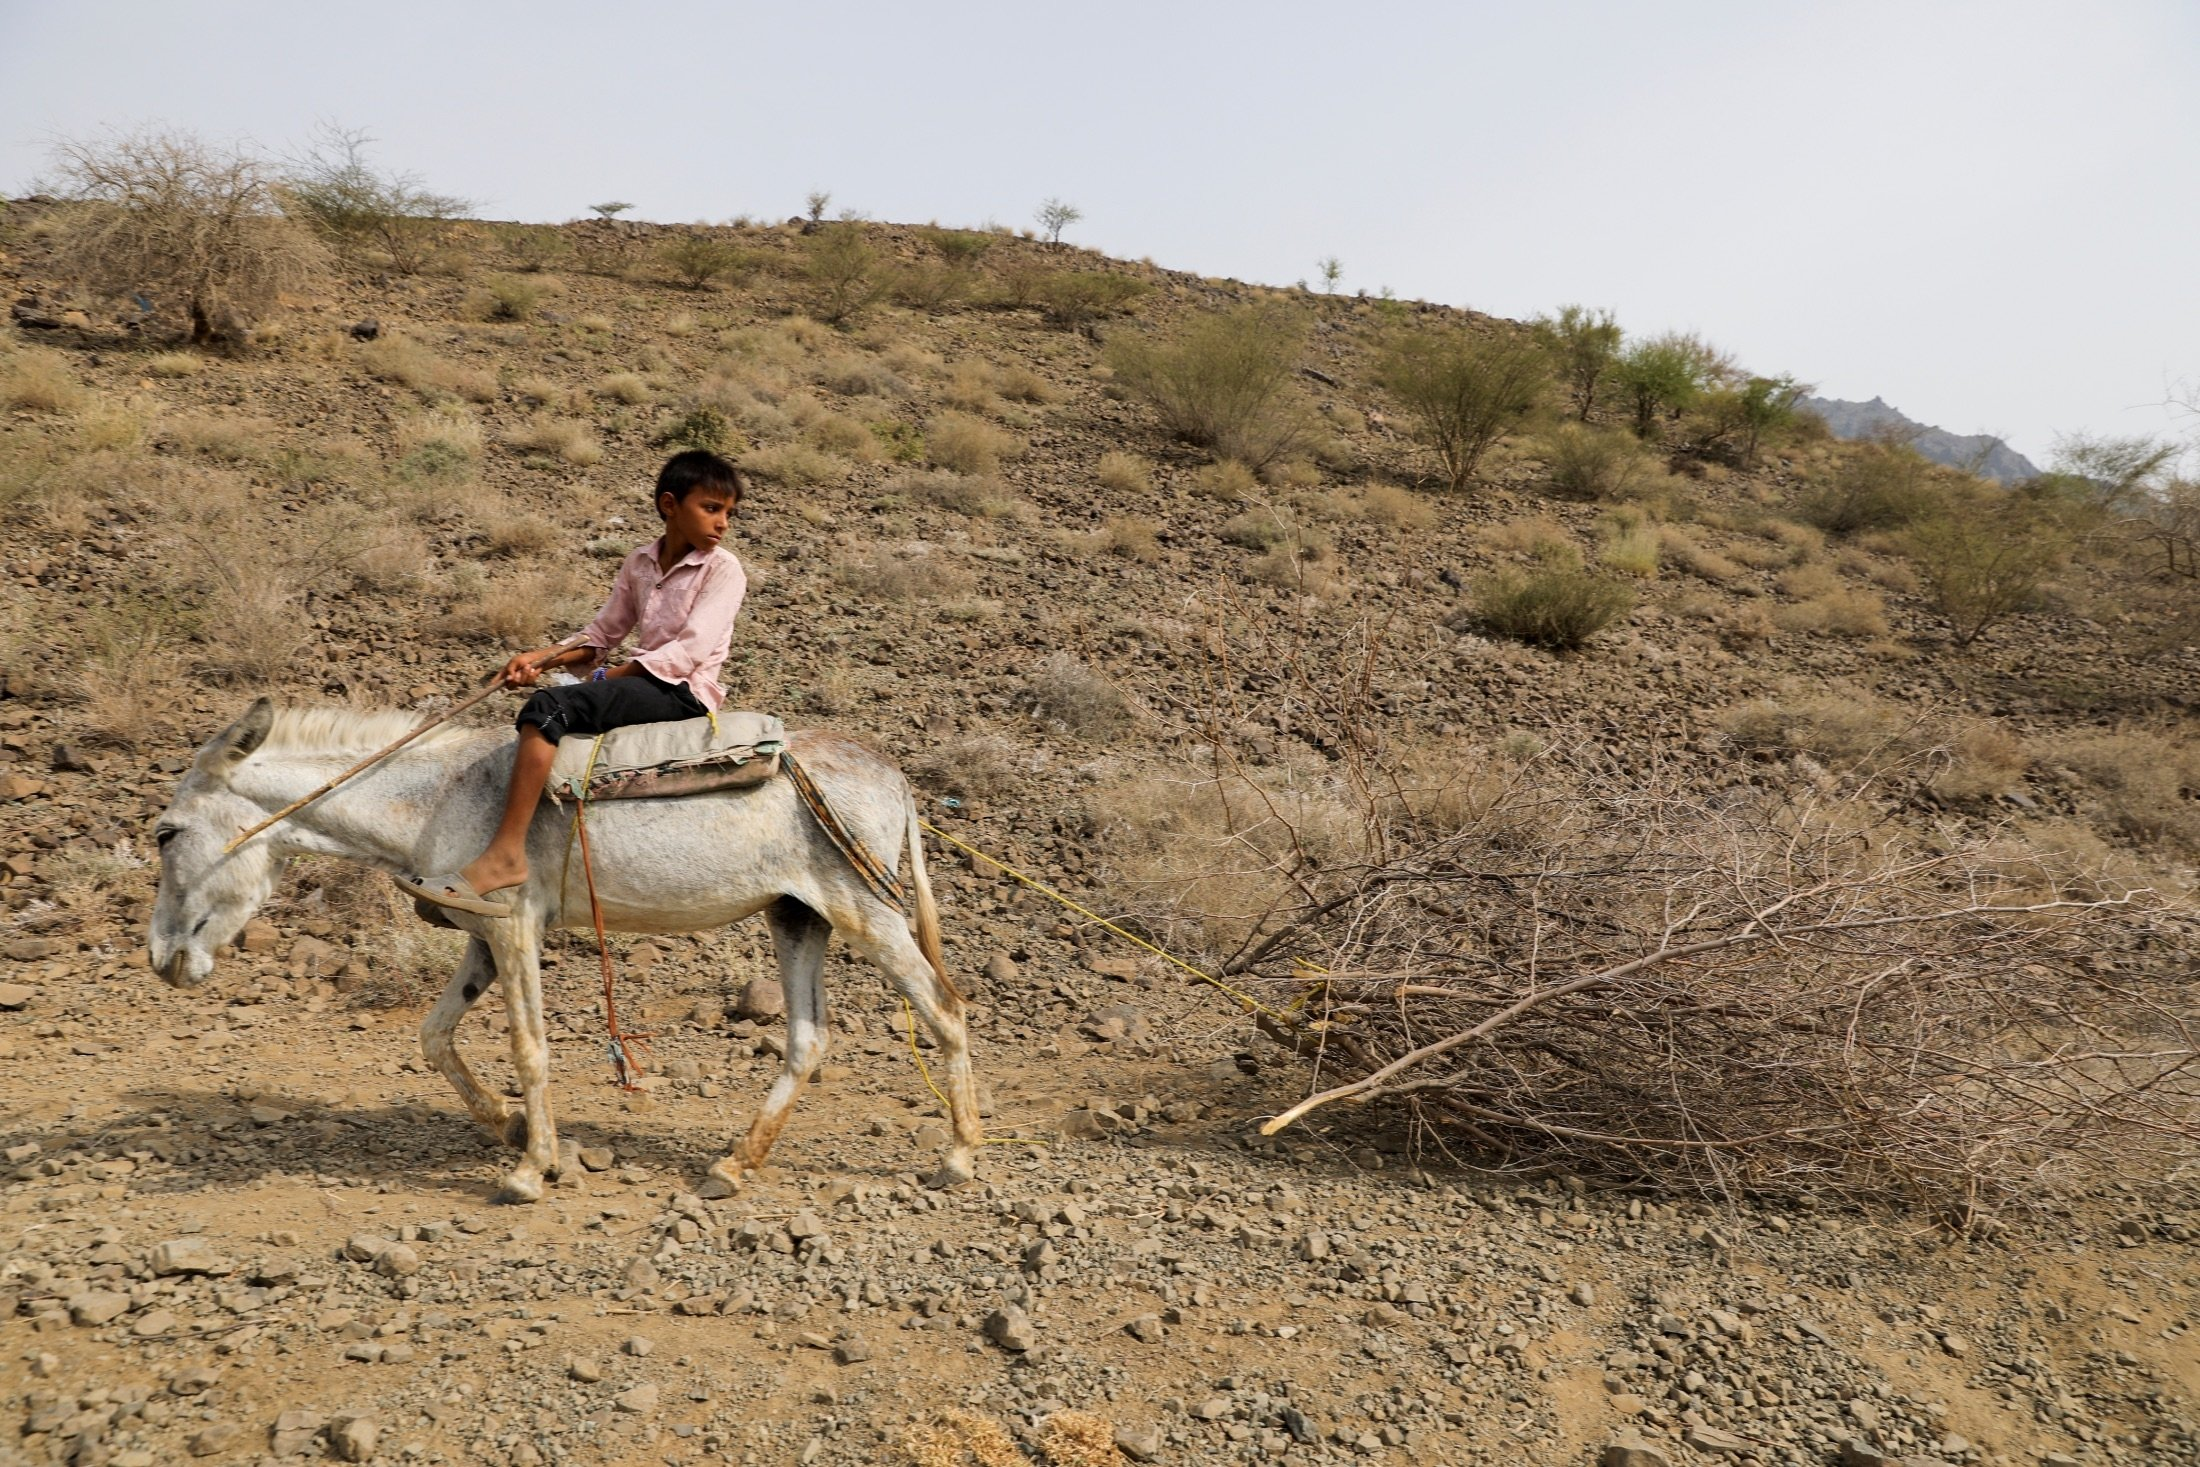 A boy who works as a lumberjack, rides a donkey as it drags a logged tree in Bajil district of Hodeida province, Yemen, June 24, 2021. (Reuters Photo)